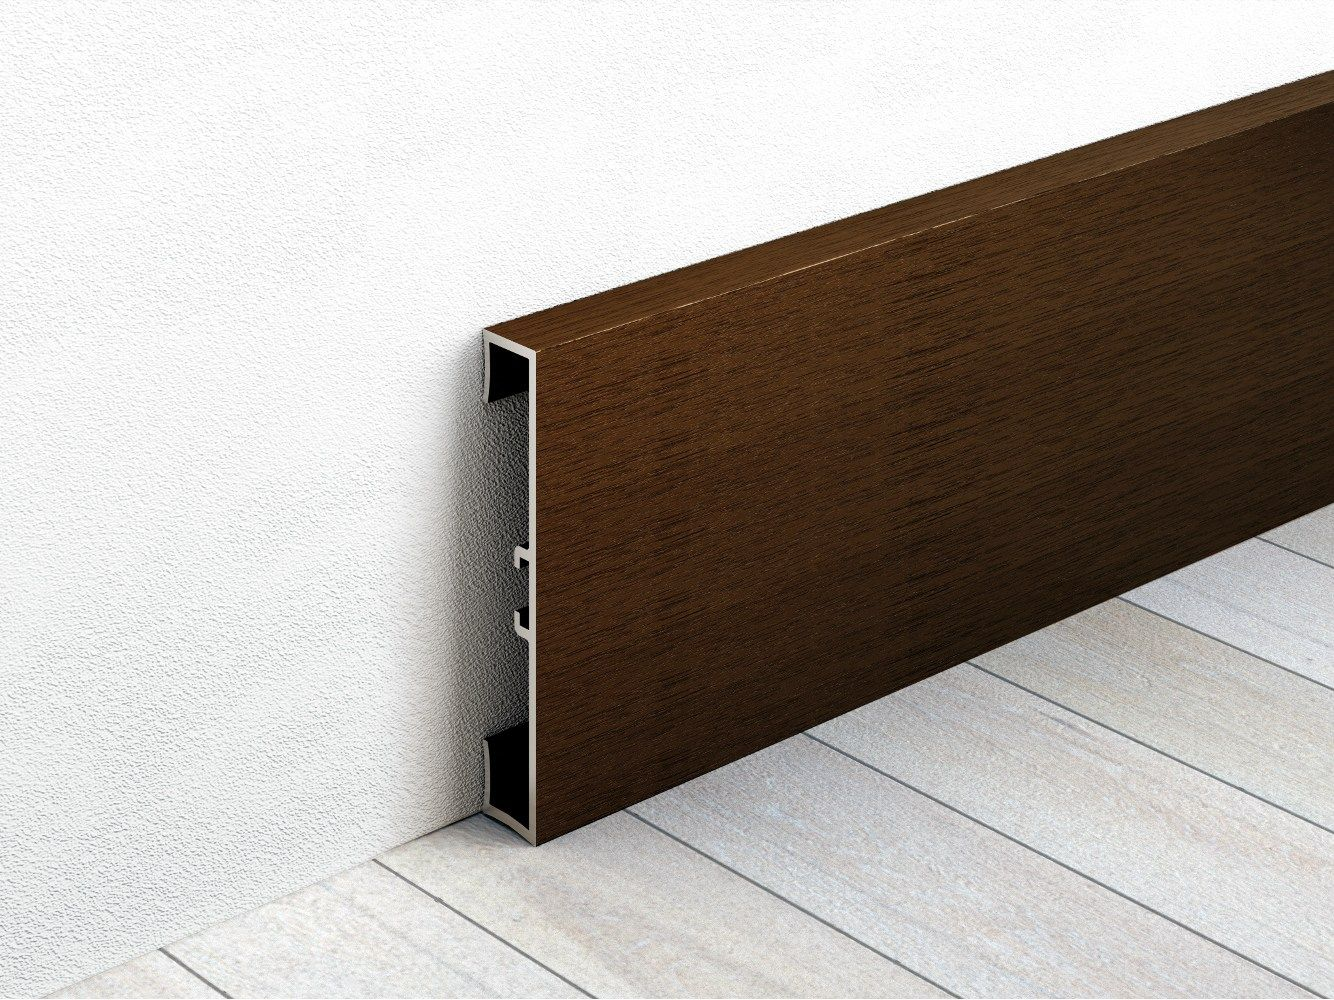 Aluminium Skirting Board With Wood Effect Metal Line By Profilpas Wood Baseboard Skirting Boards Skirting